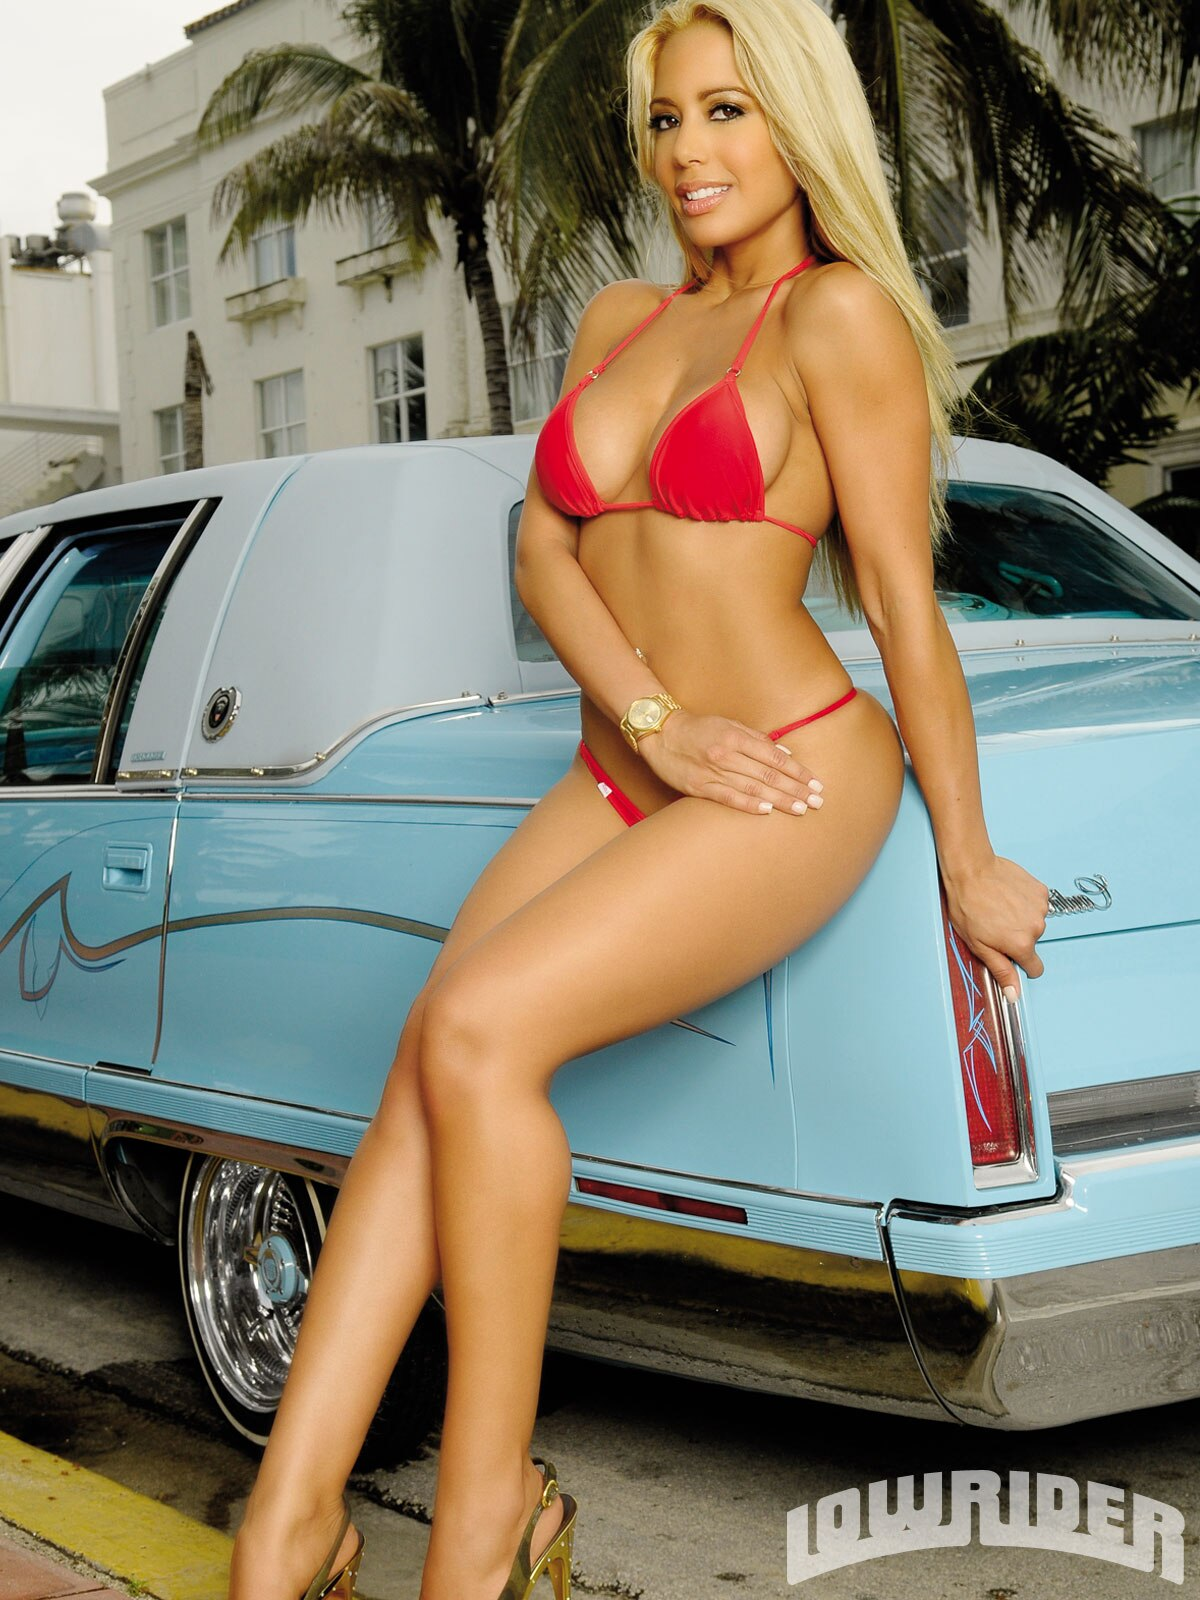 What Do You Call The Girls At Car Shows